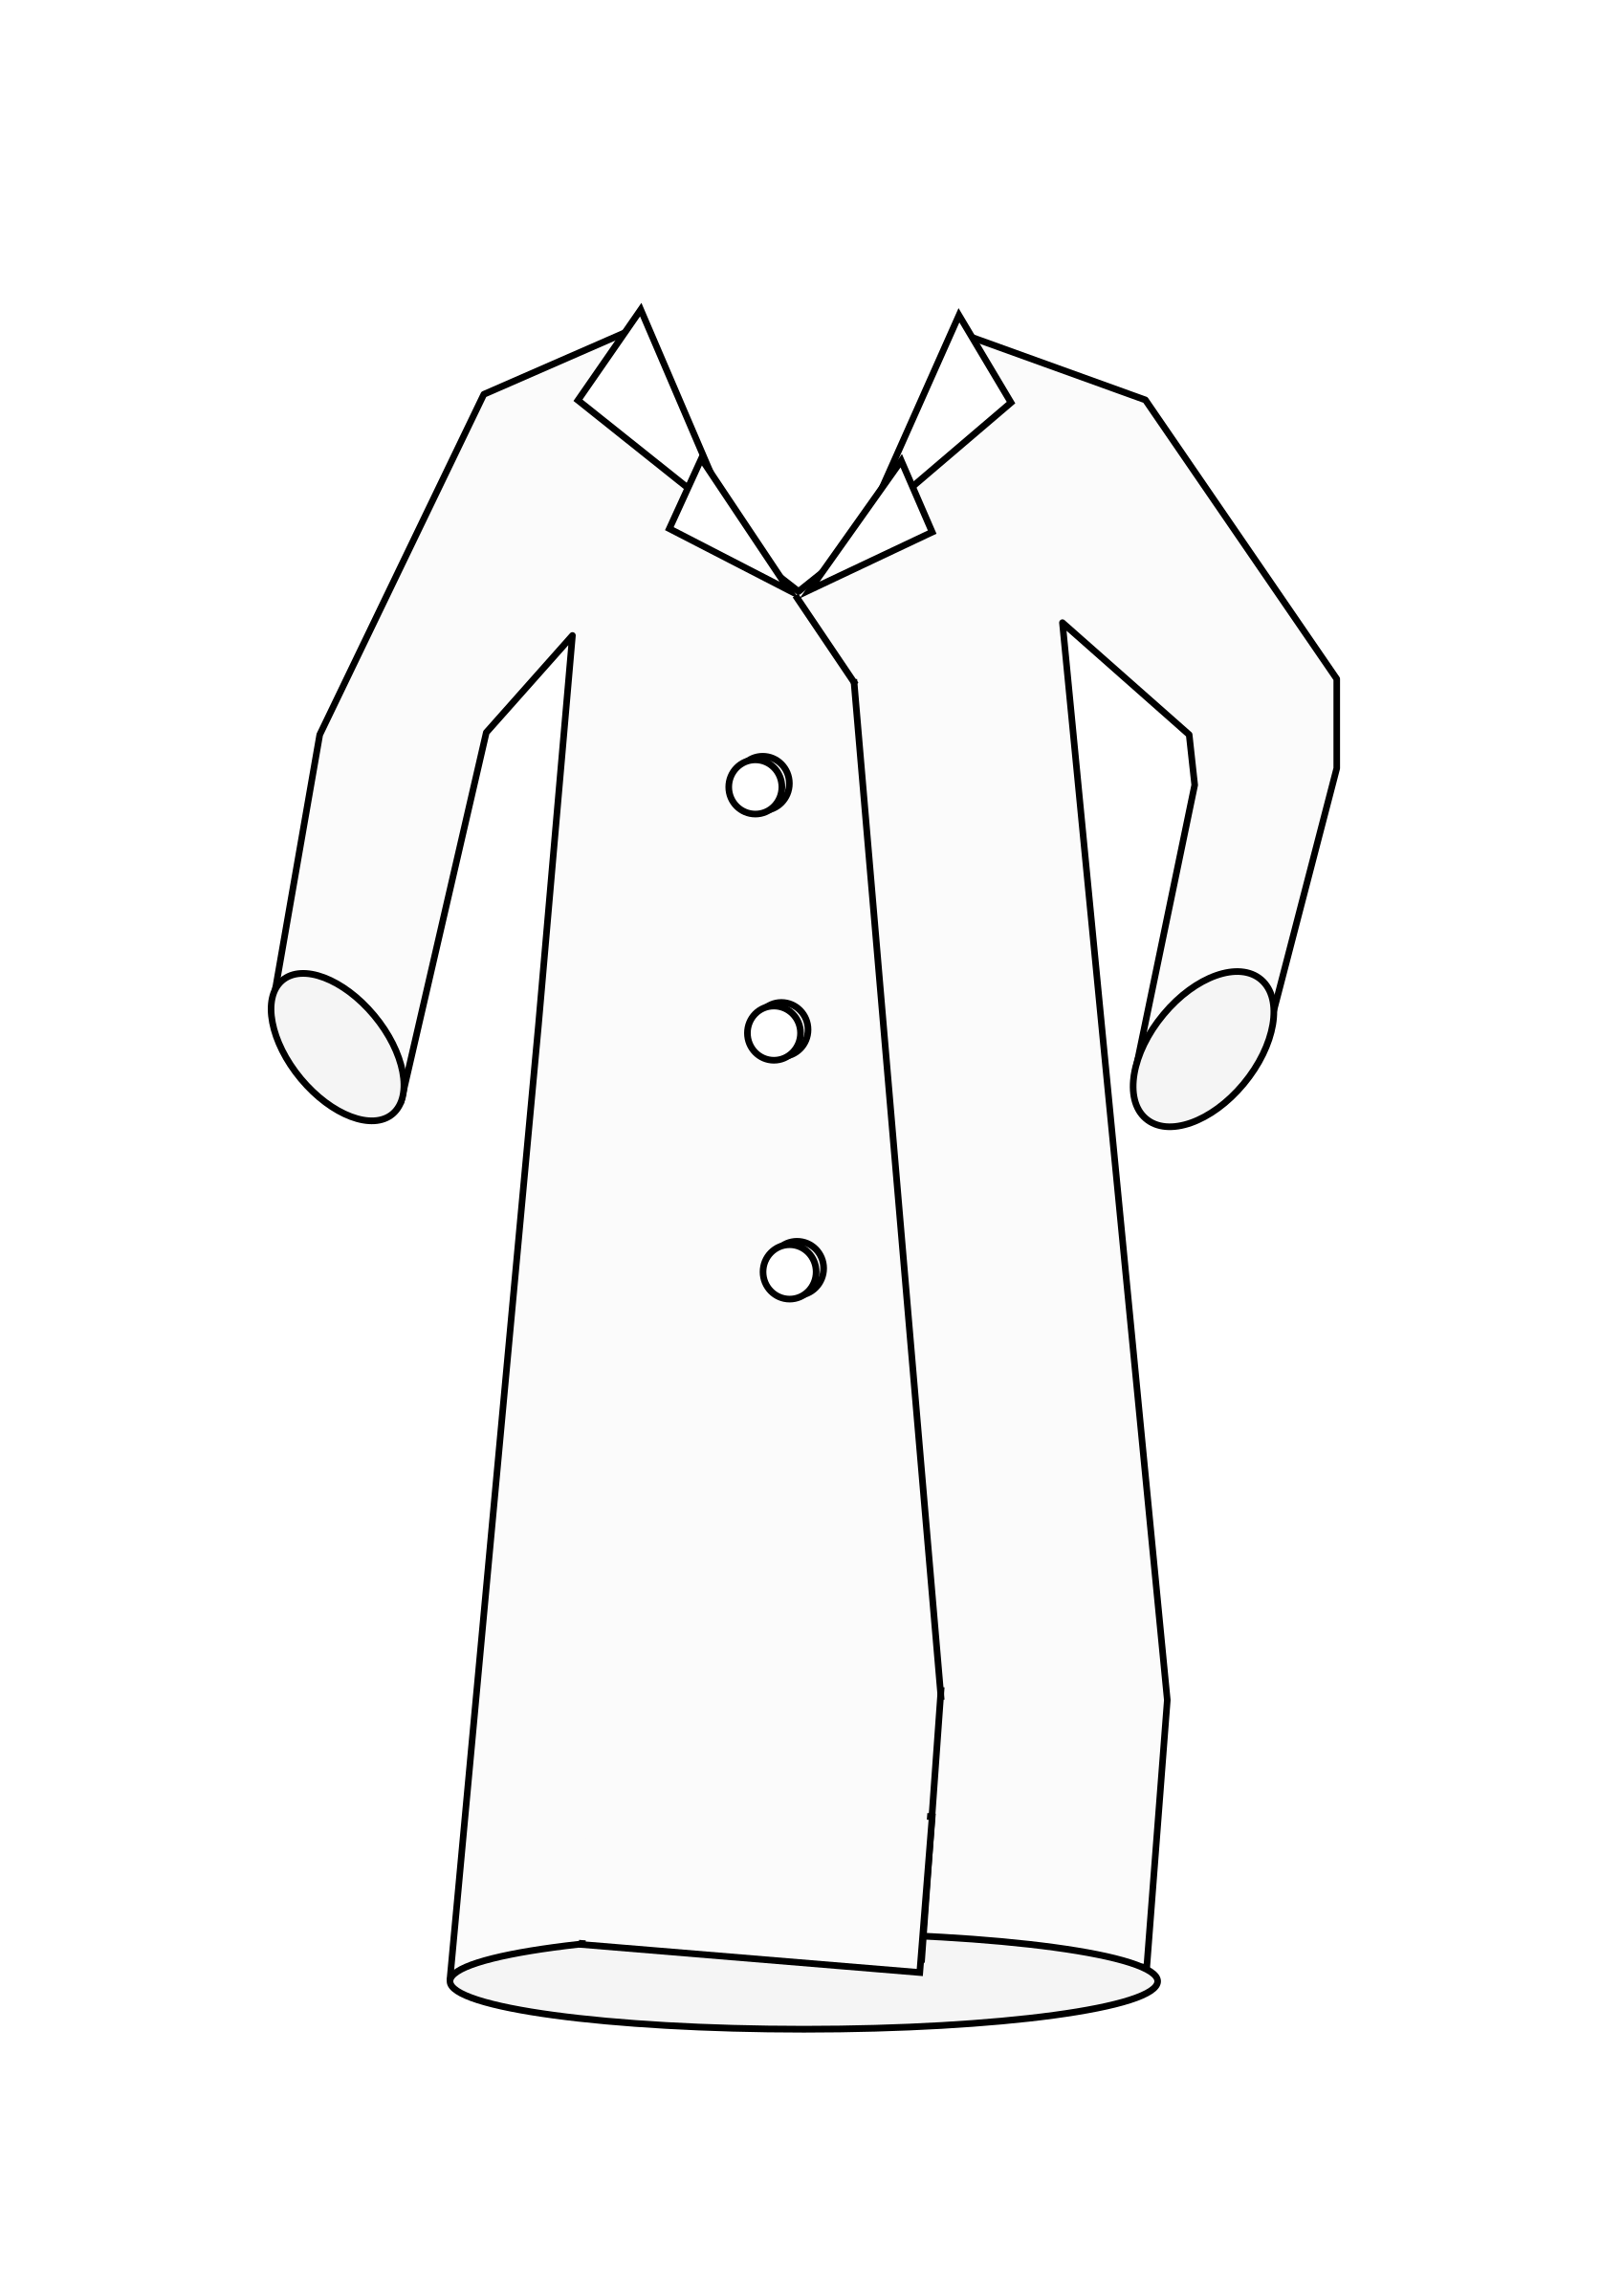 Free lab cliparts download. Patient clipart laboratory coat